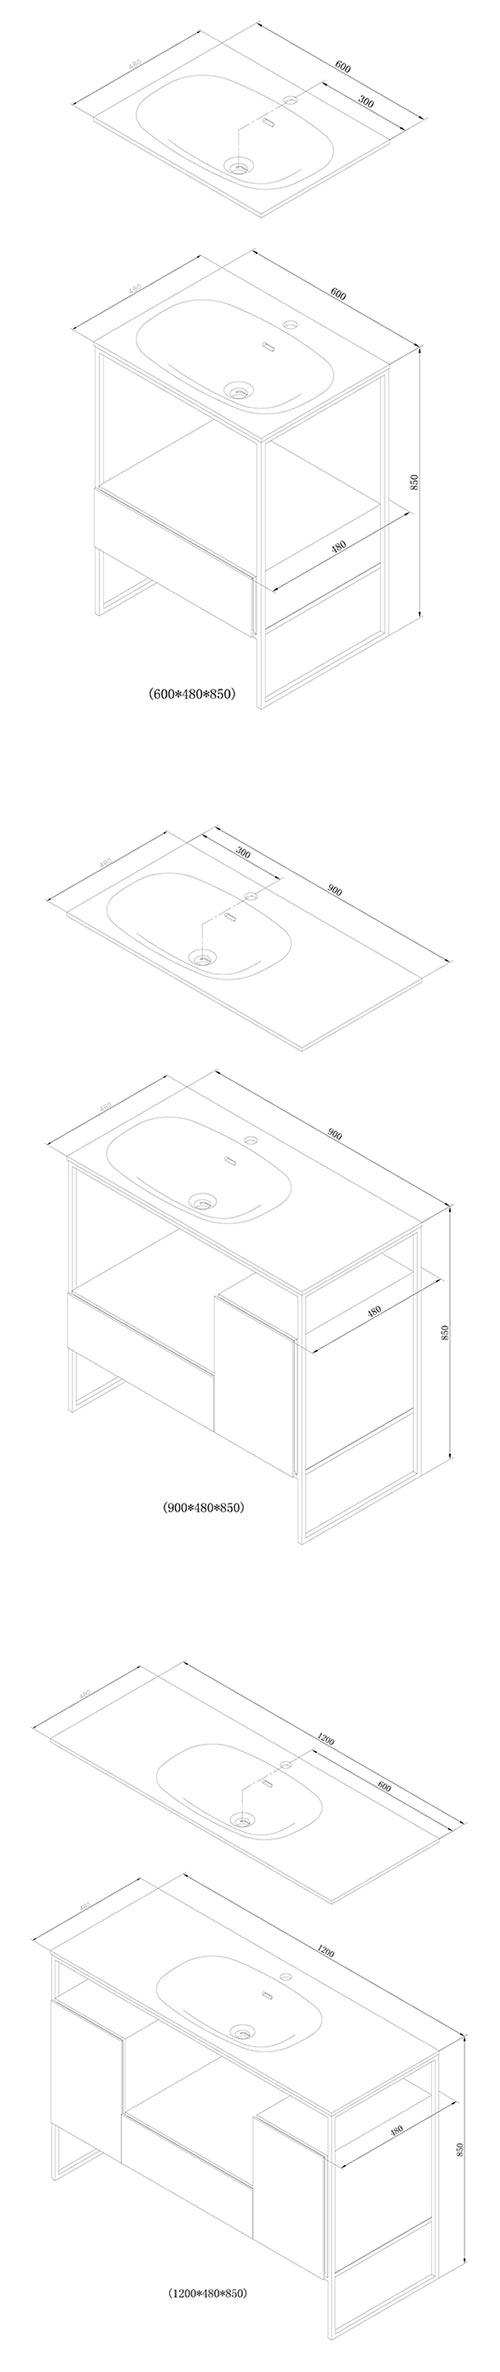 TECHNICAL DRAWING schema meuble Frame